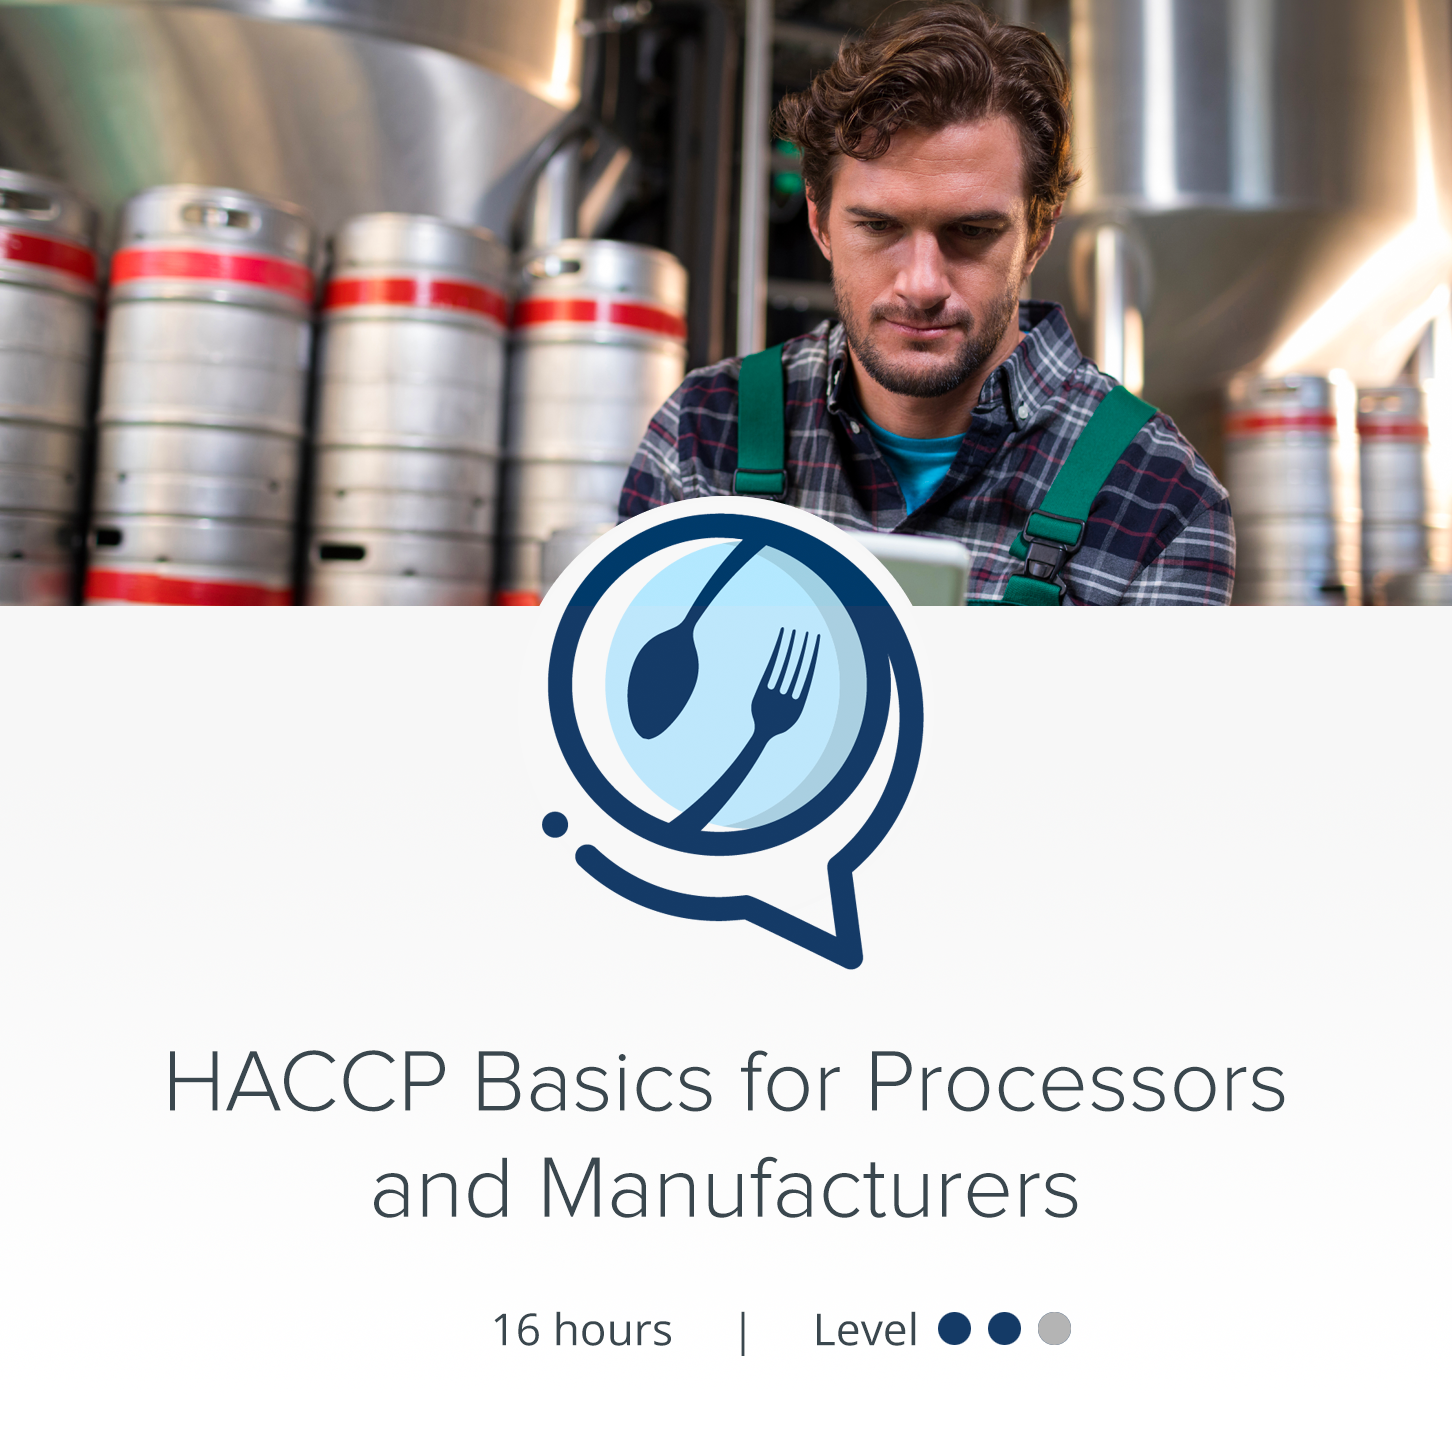 HACCPTraining.org - Courses - HACCP Basics for Processors and Manufacturers